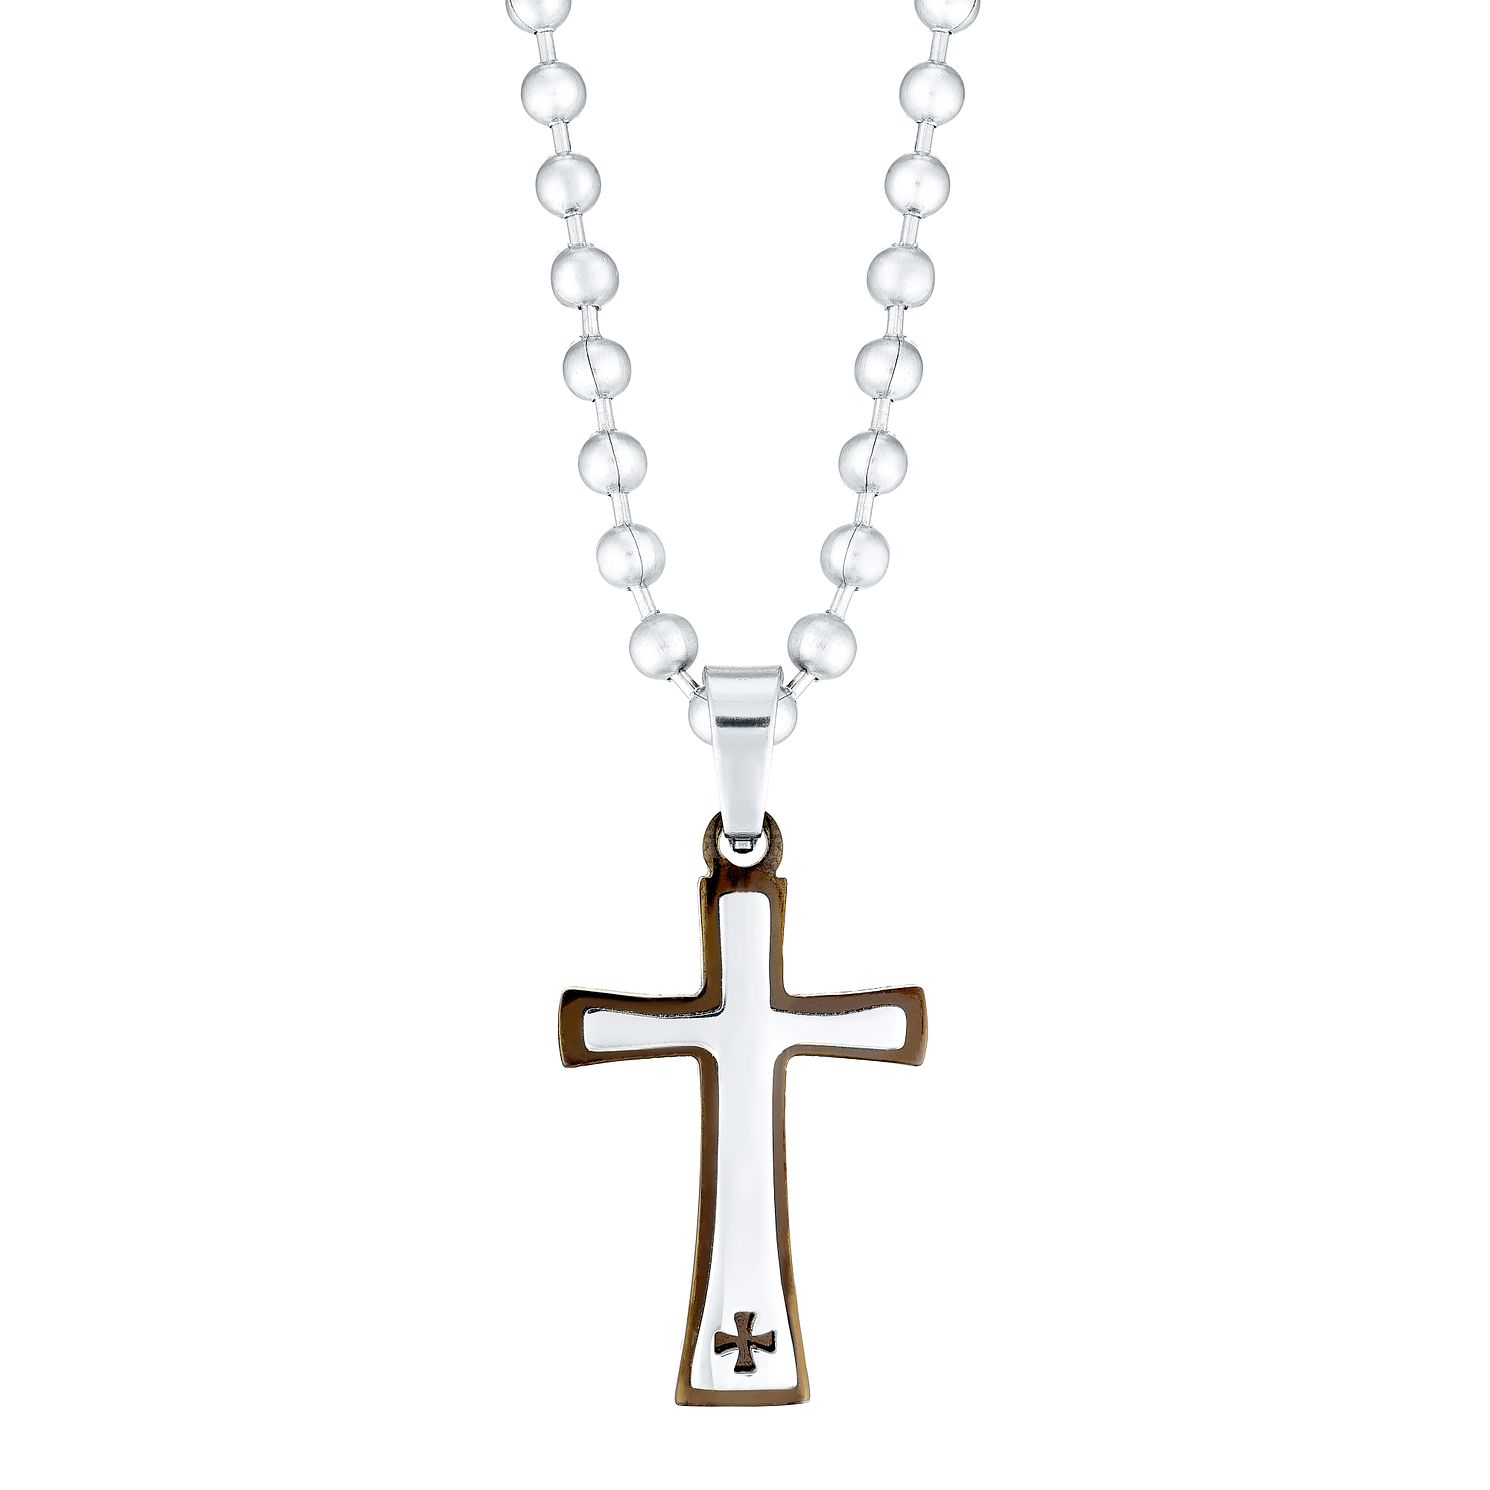 Stainless Steel Cross Pendant With Ball Chain - Product number 4358422